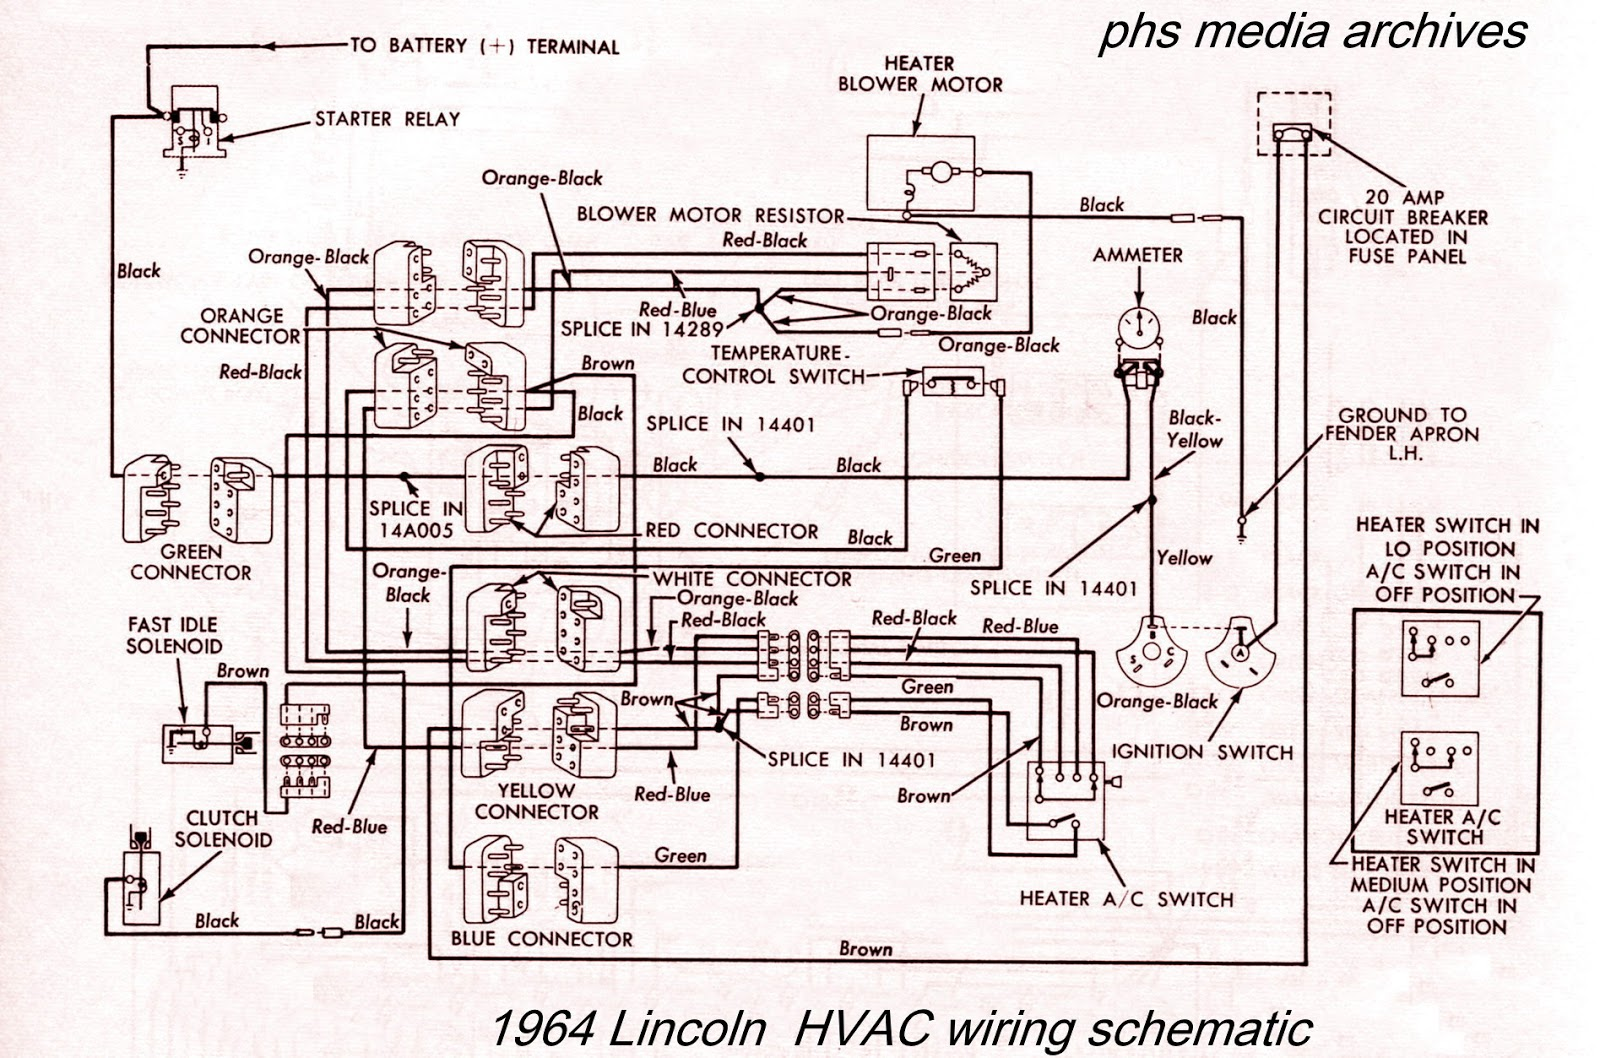 1964 Lincoln heater/air conditioning circuits. Right click for enlargement.